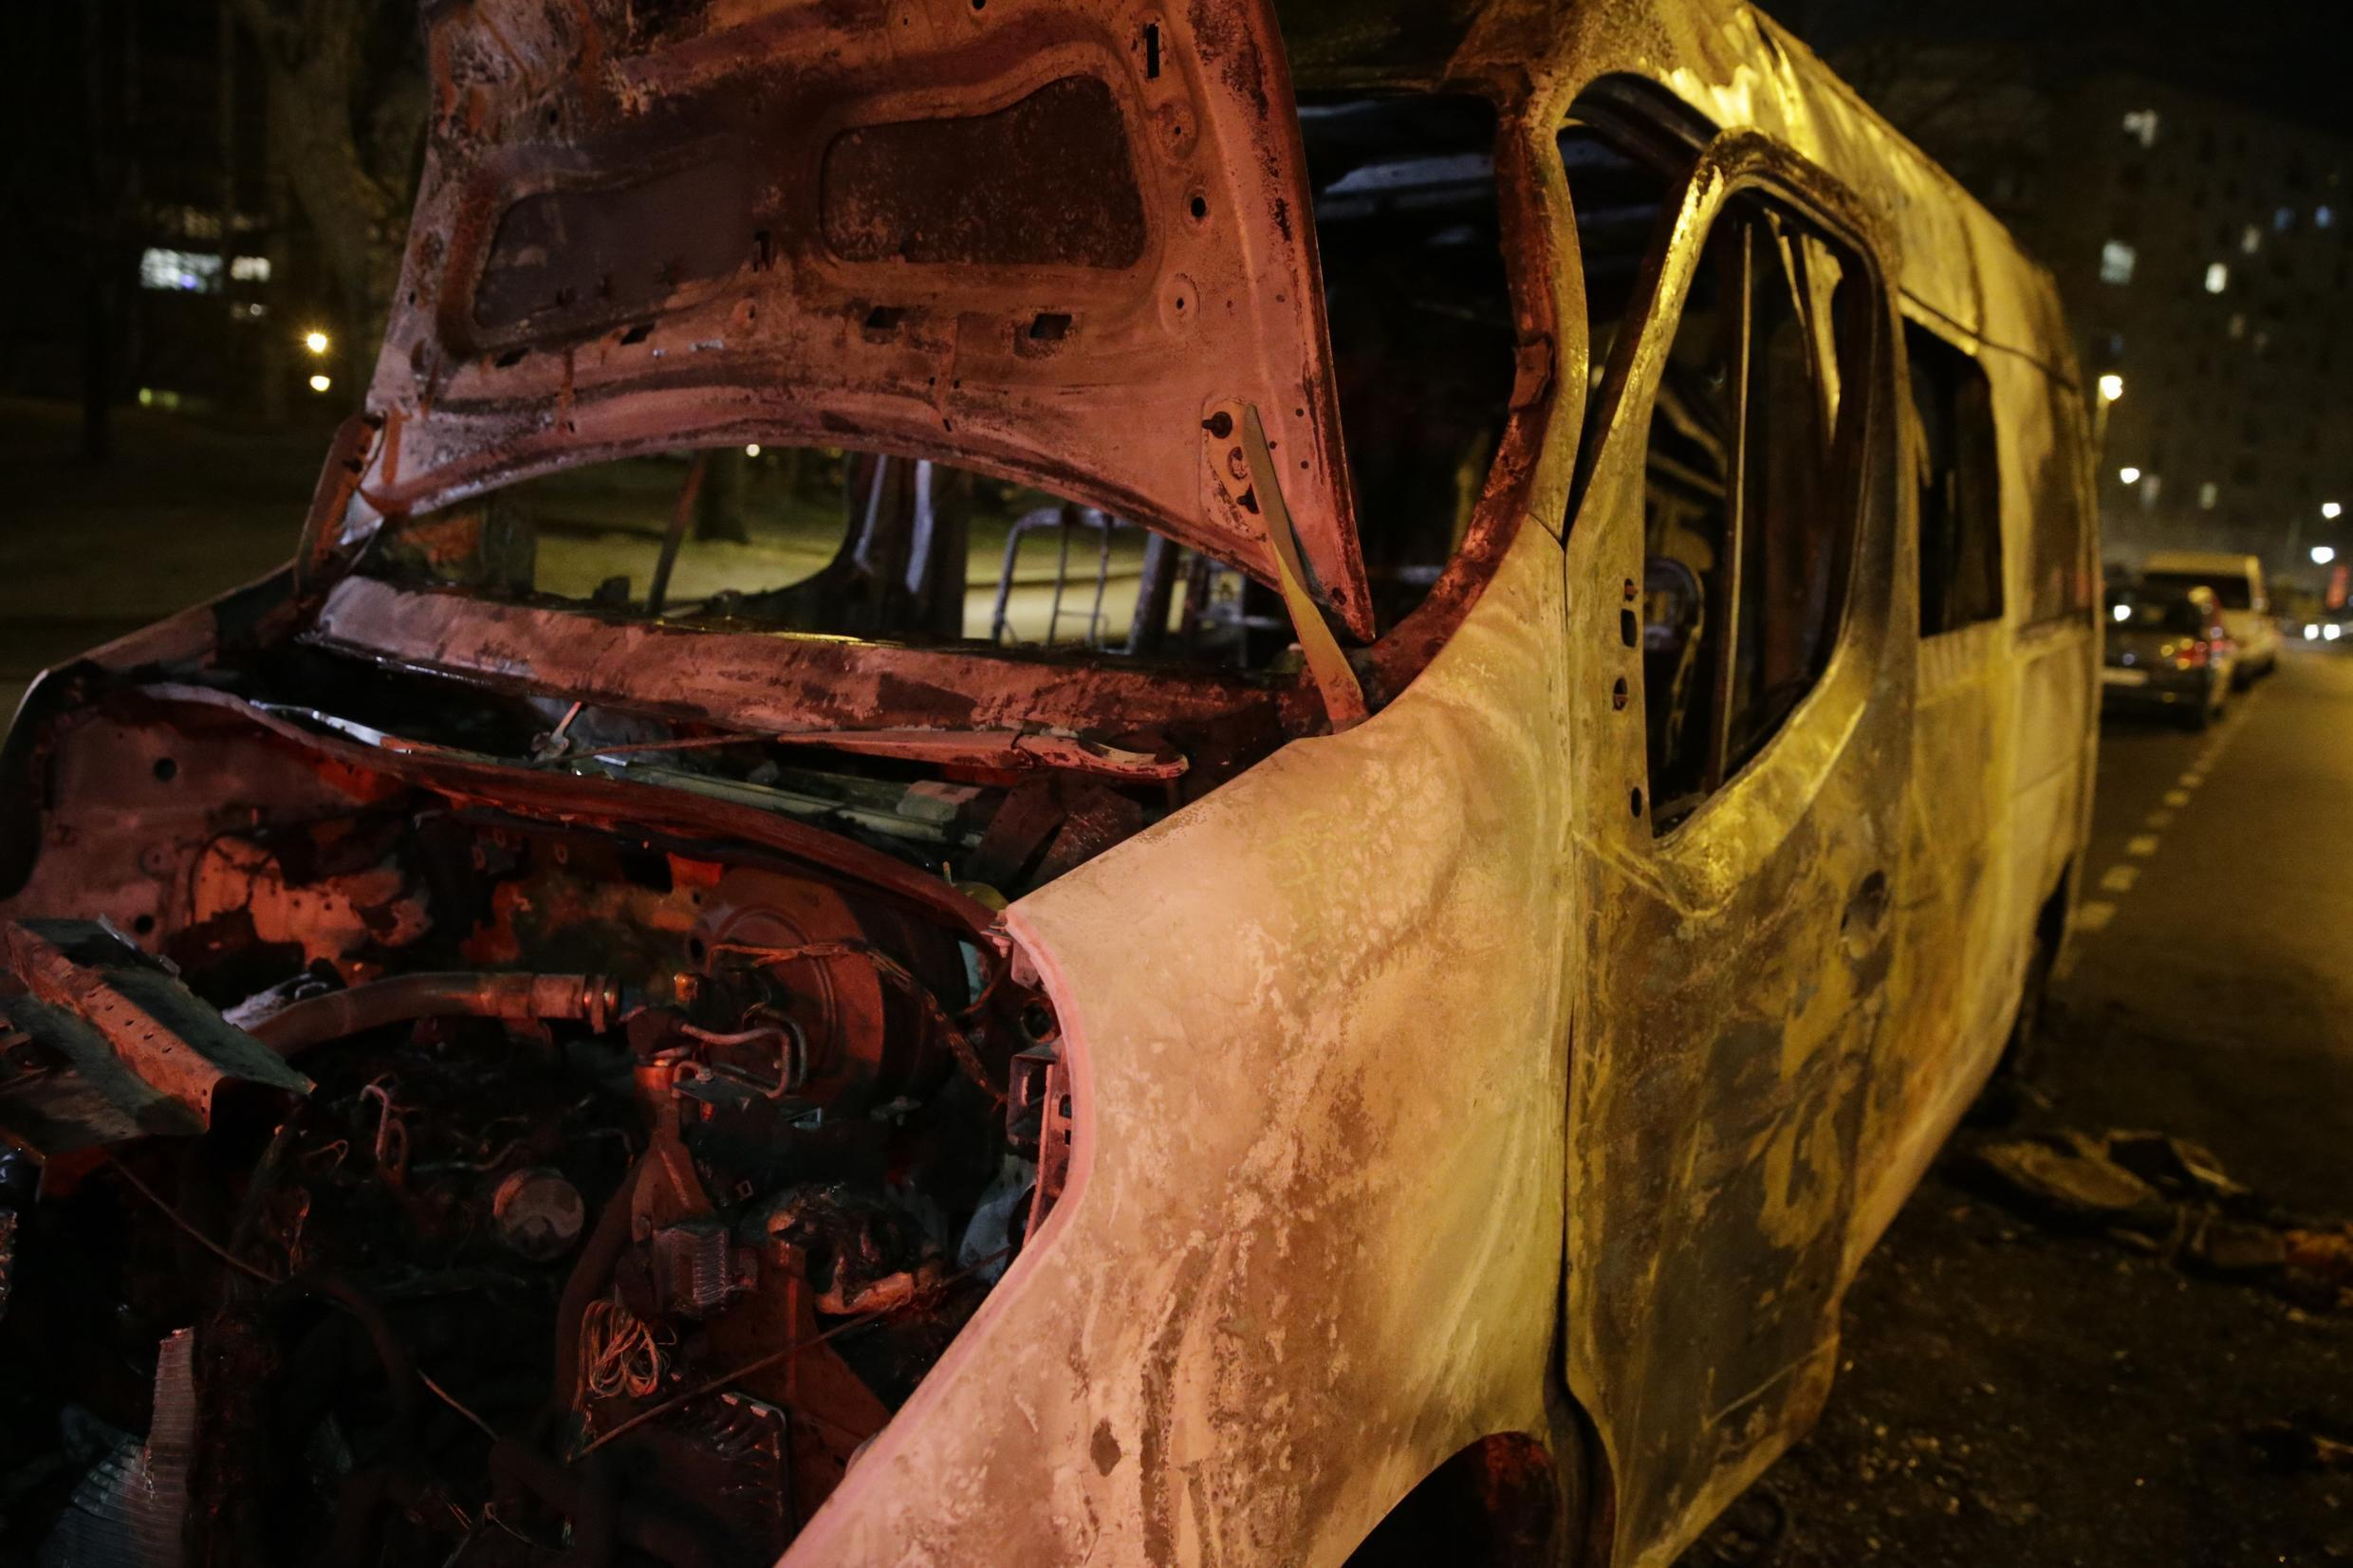 A burnt out van in the Val d'Argent Sud neighbourhood of Argenteuil, after incidents broke out earlier in the evening which led to the arrests of 11 people